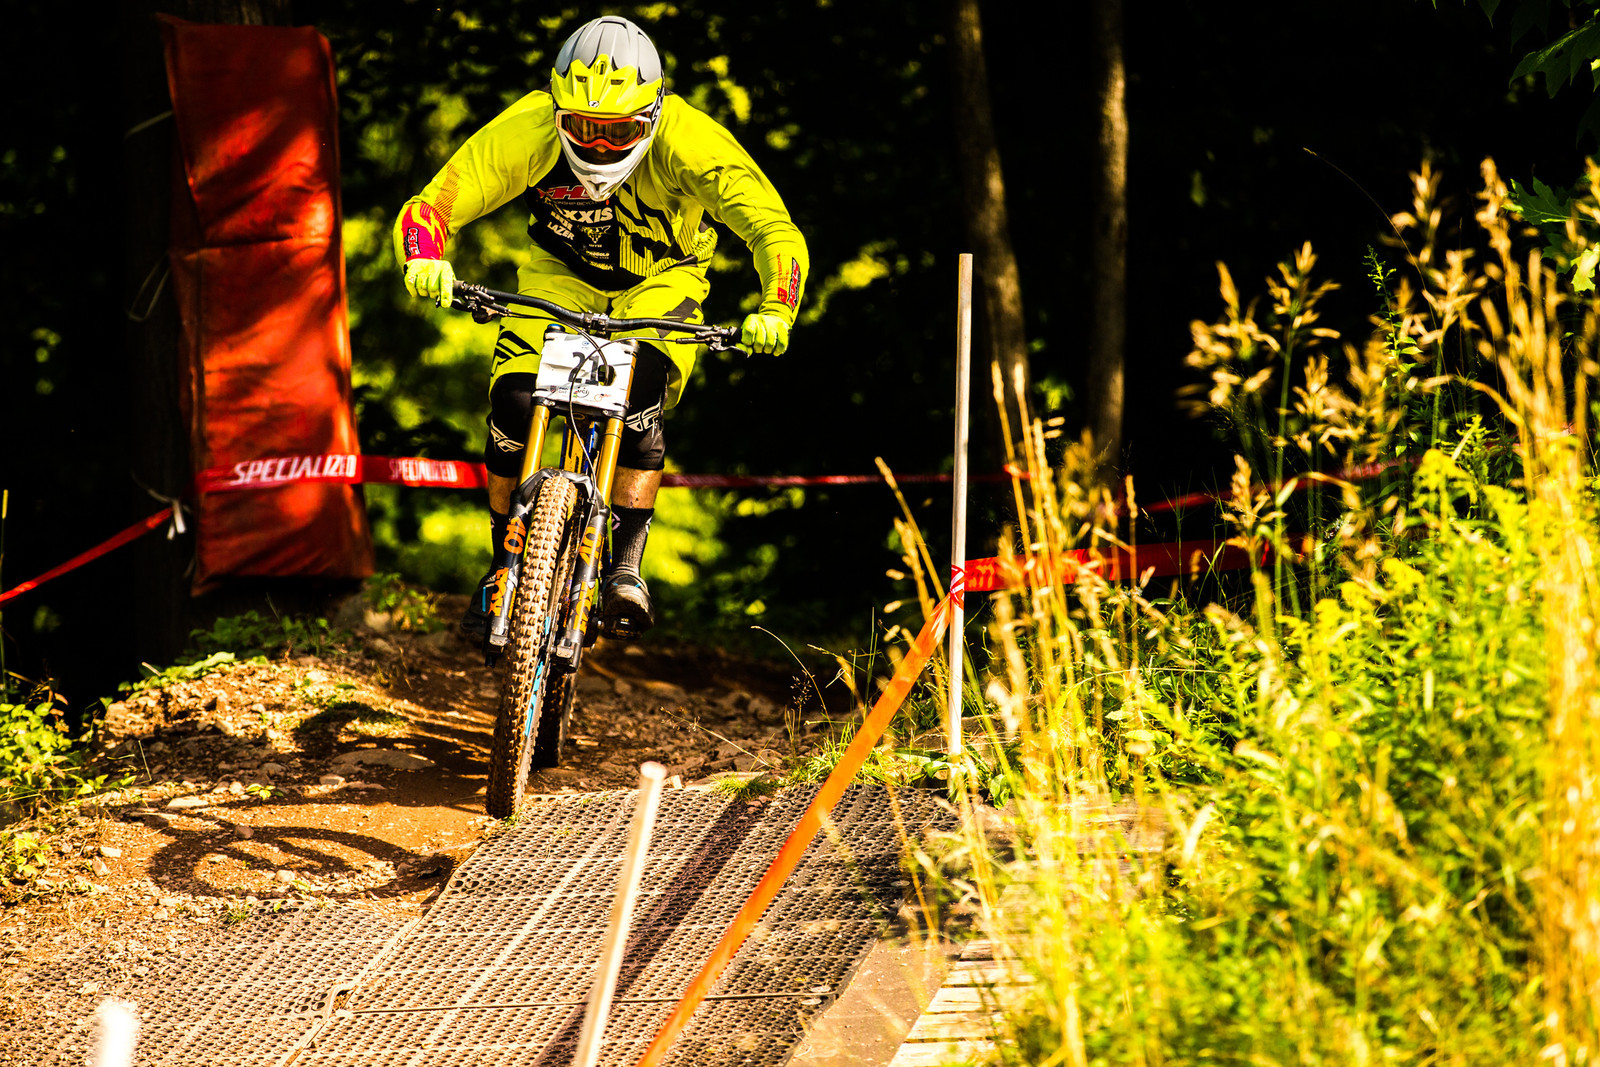 Quinton Spaulding - RACE DAY GALLERY - 2017 Pro GRT, Windham, NY - Mountain Biking Pictures - Vital MTB